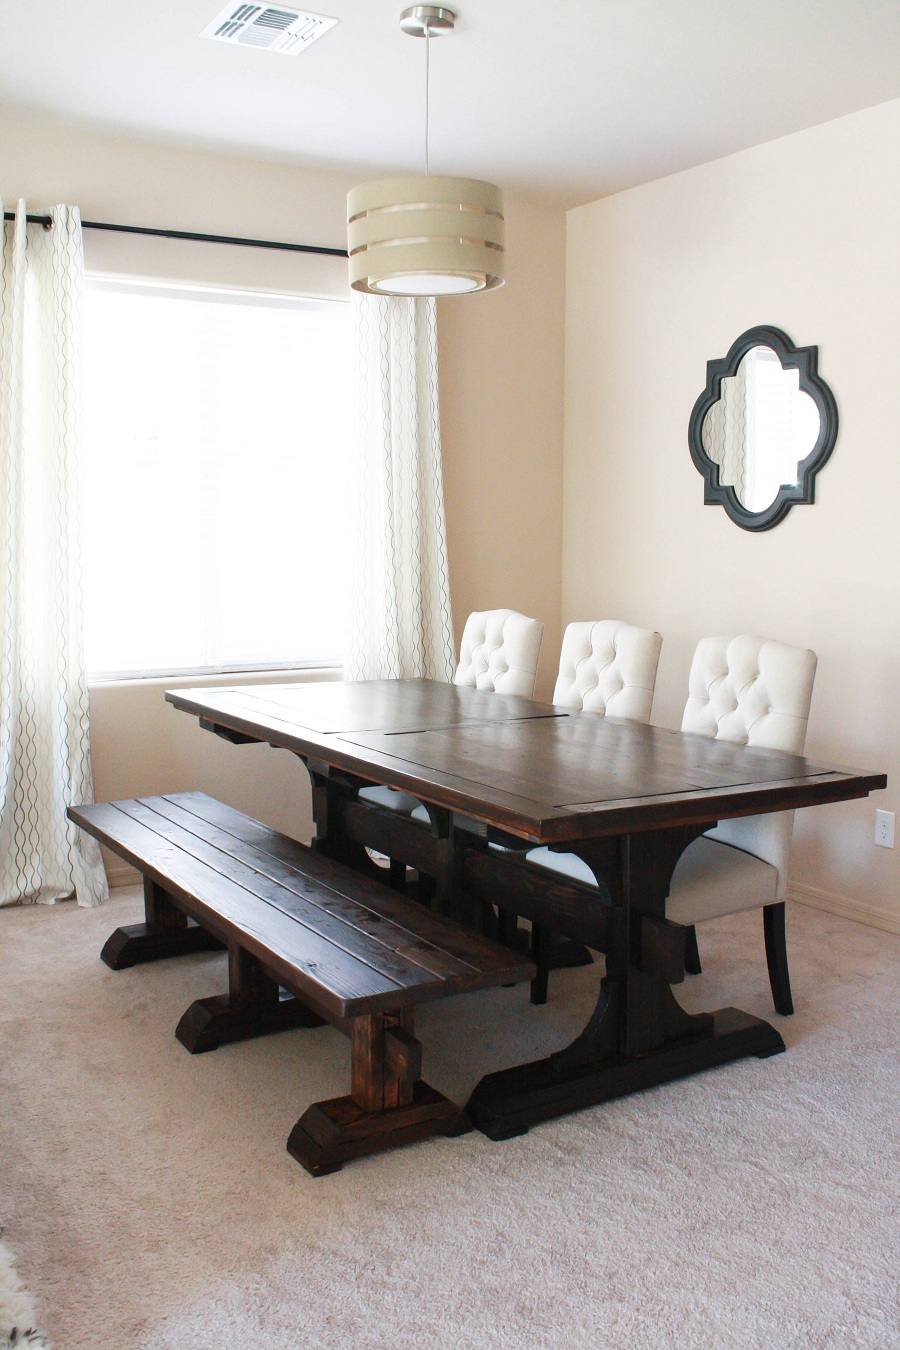 Image of: Ideas Farmhouse Table Ana White